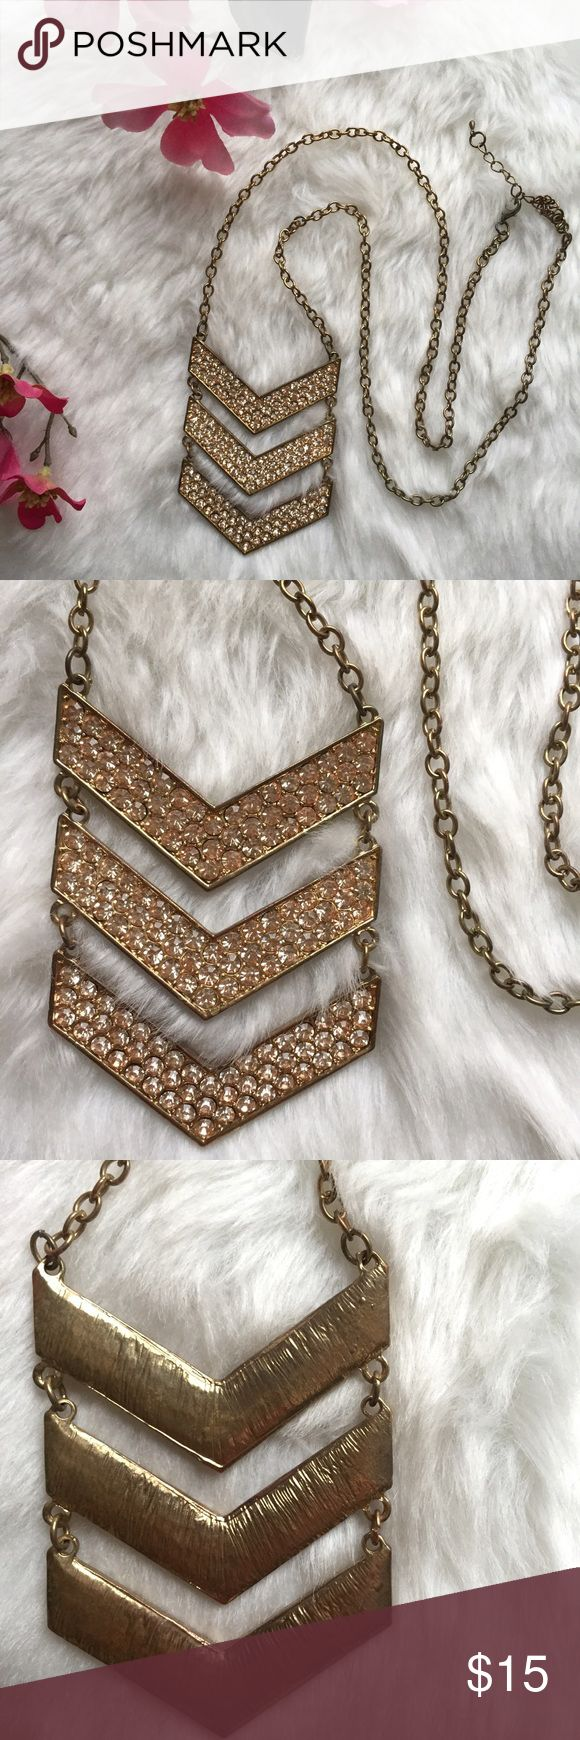 Gold Rhinestoned Arrow Necklace Beautiful, new chevron necklace! No rhinestones missing or scratches. Anthropologie Jewelry Necklaces